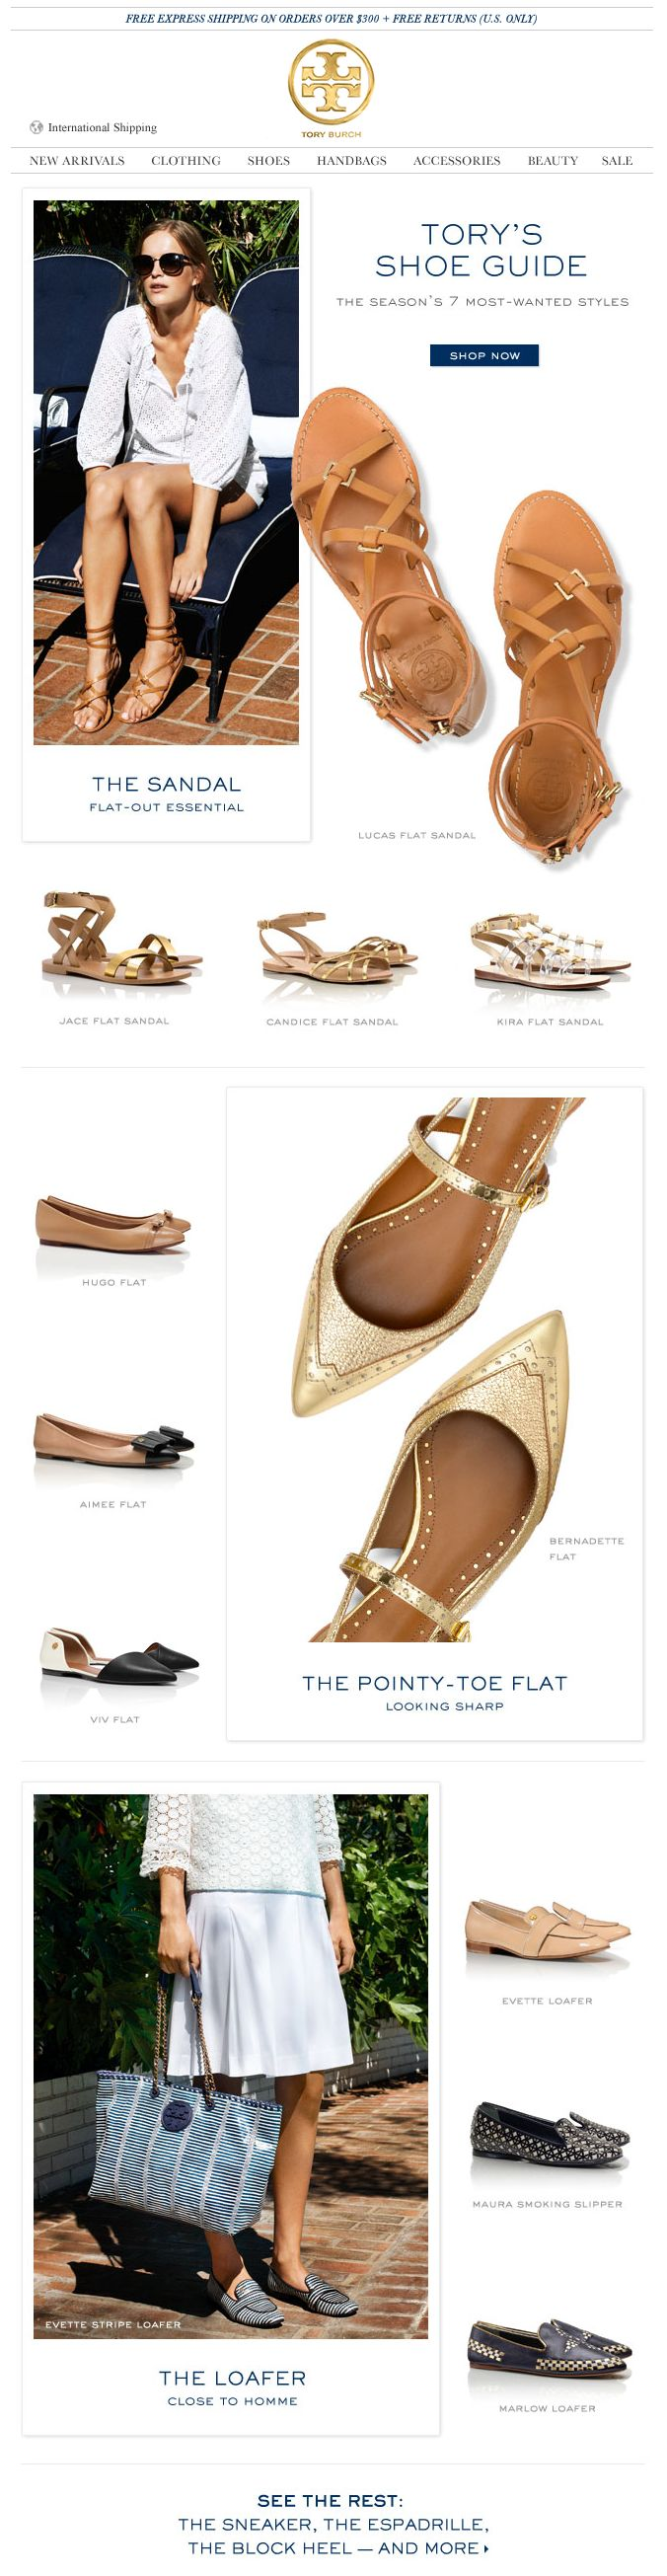 Shoe email newsletter